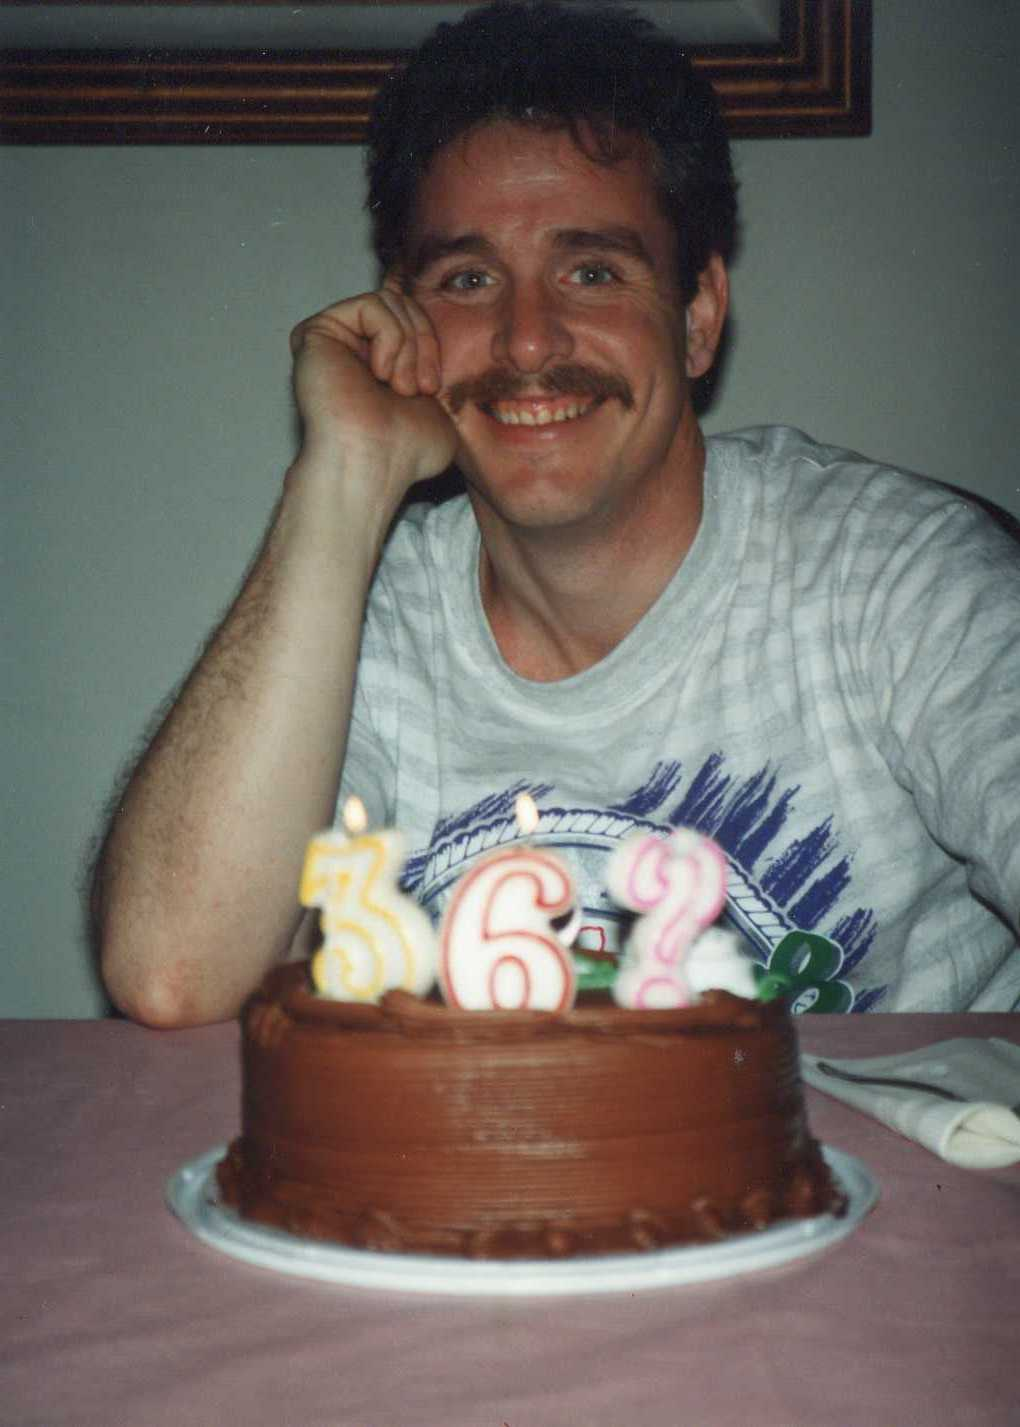 Tom's 36th Birthday